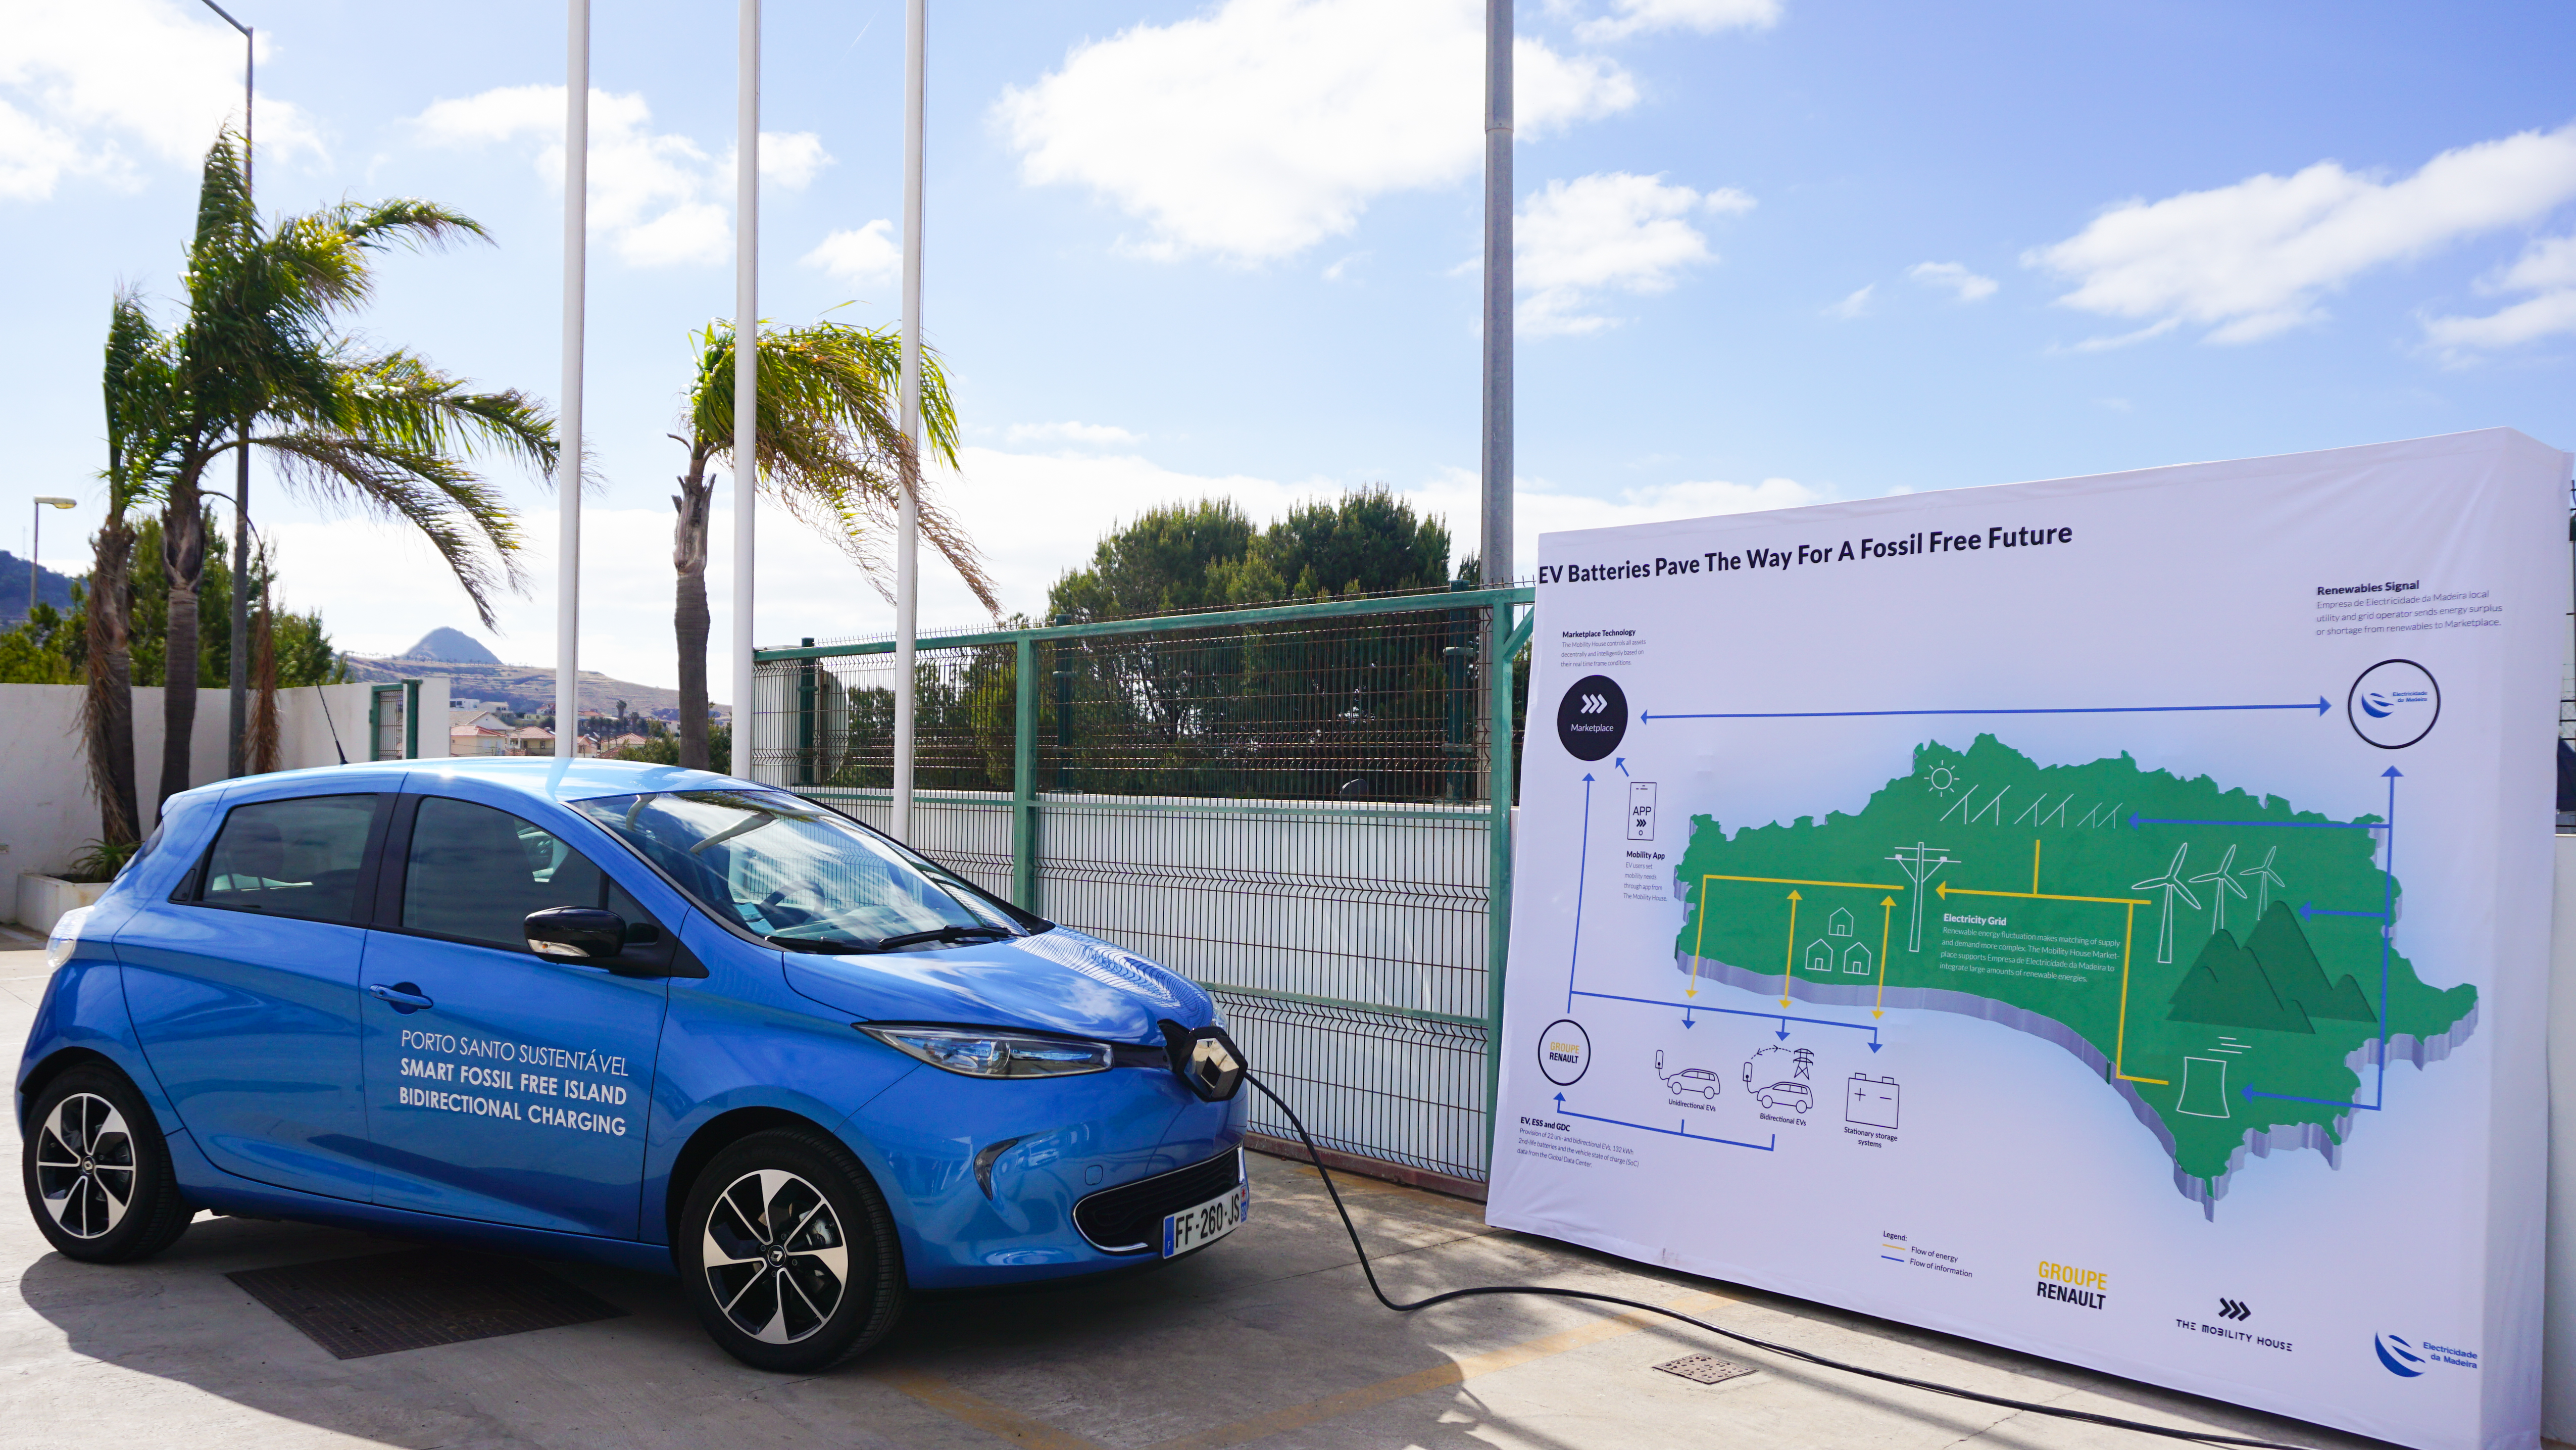 EV batteries pave the way for a fossil free future